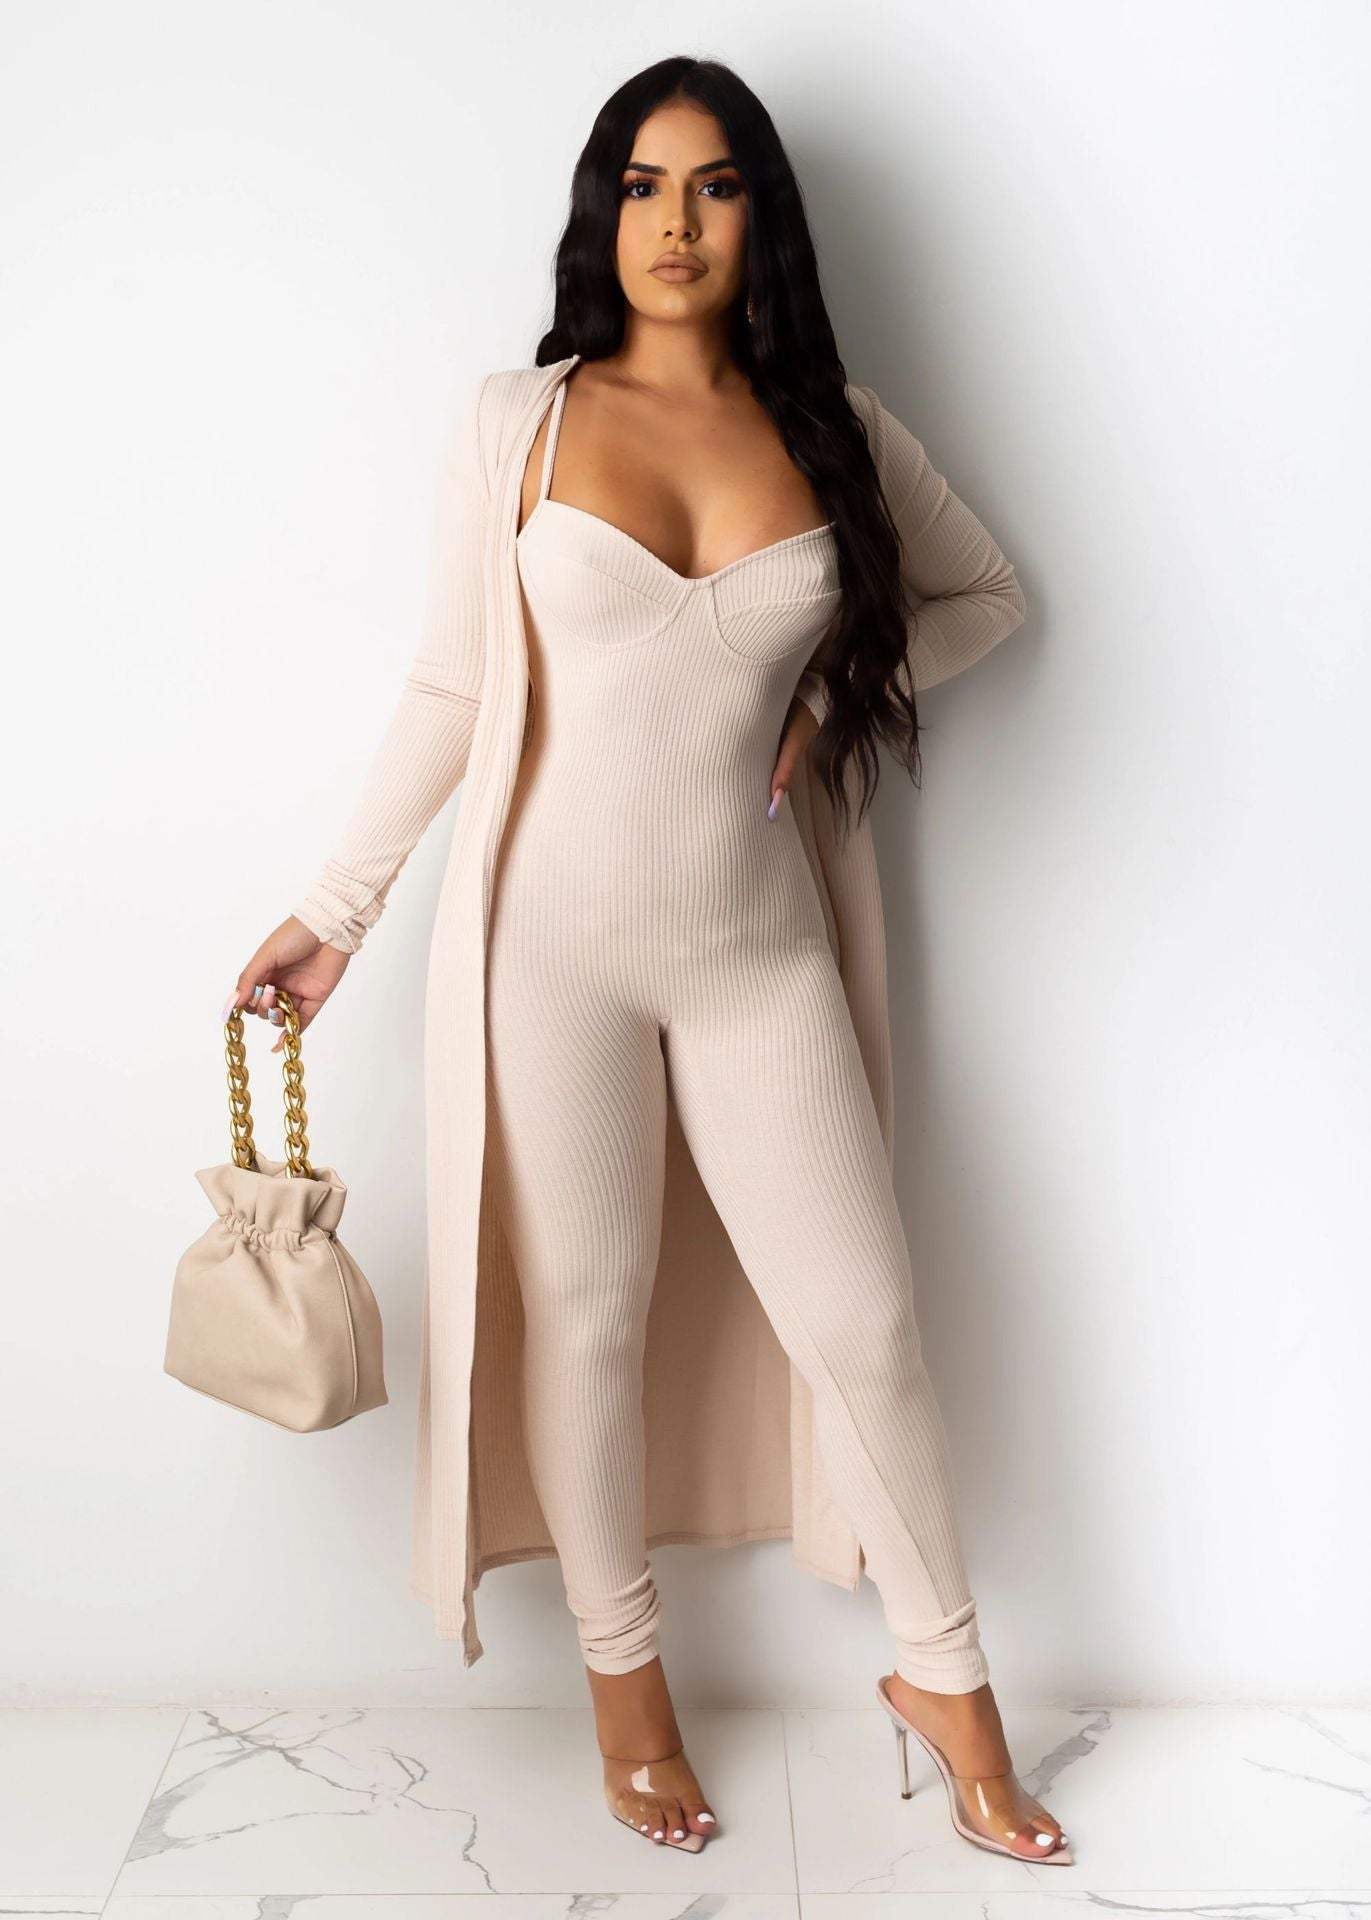 Fall Clothes 2020 Long Sleeve Casual Lounge Wear Lady Outfit With Cover Bodysuit Vendors Women Jumpsuit